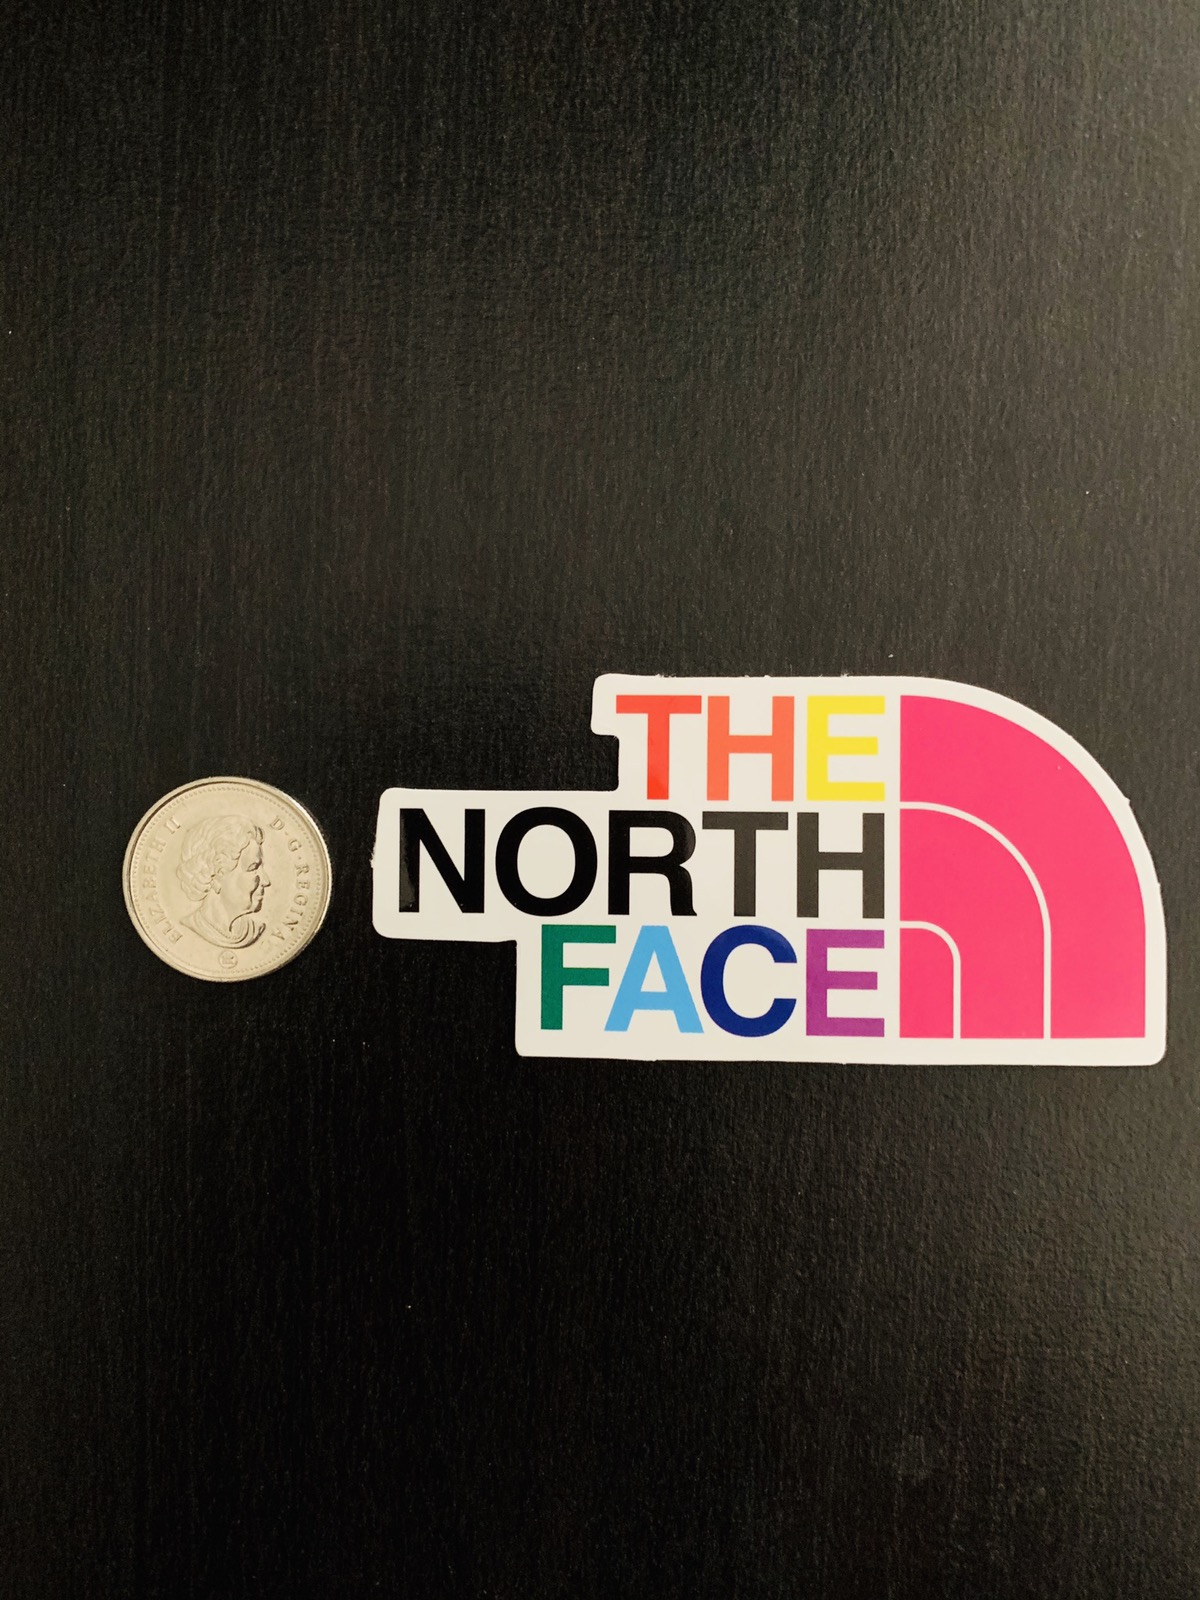 Lot Of The North Face Stickers Guaranteed Authentic Collection 1